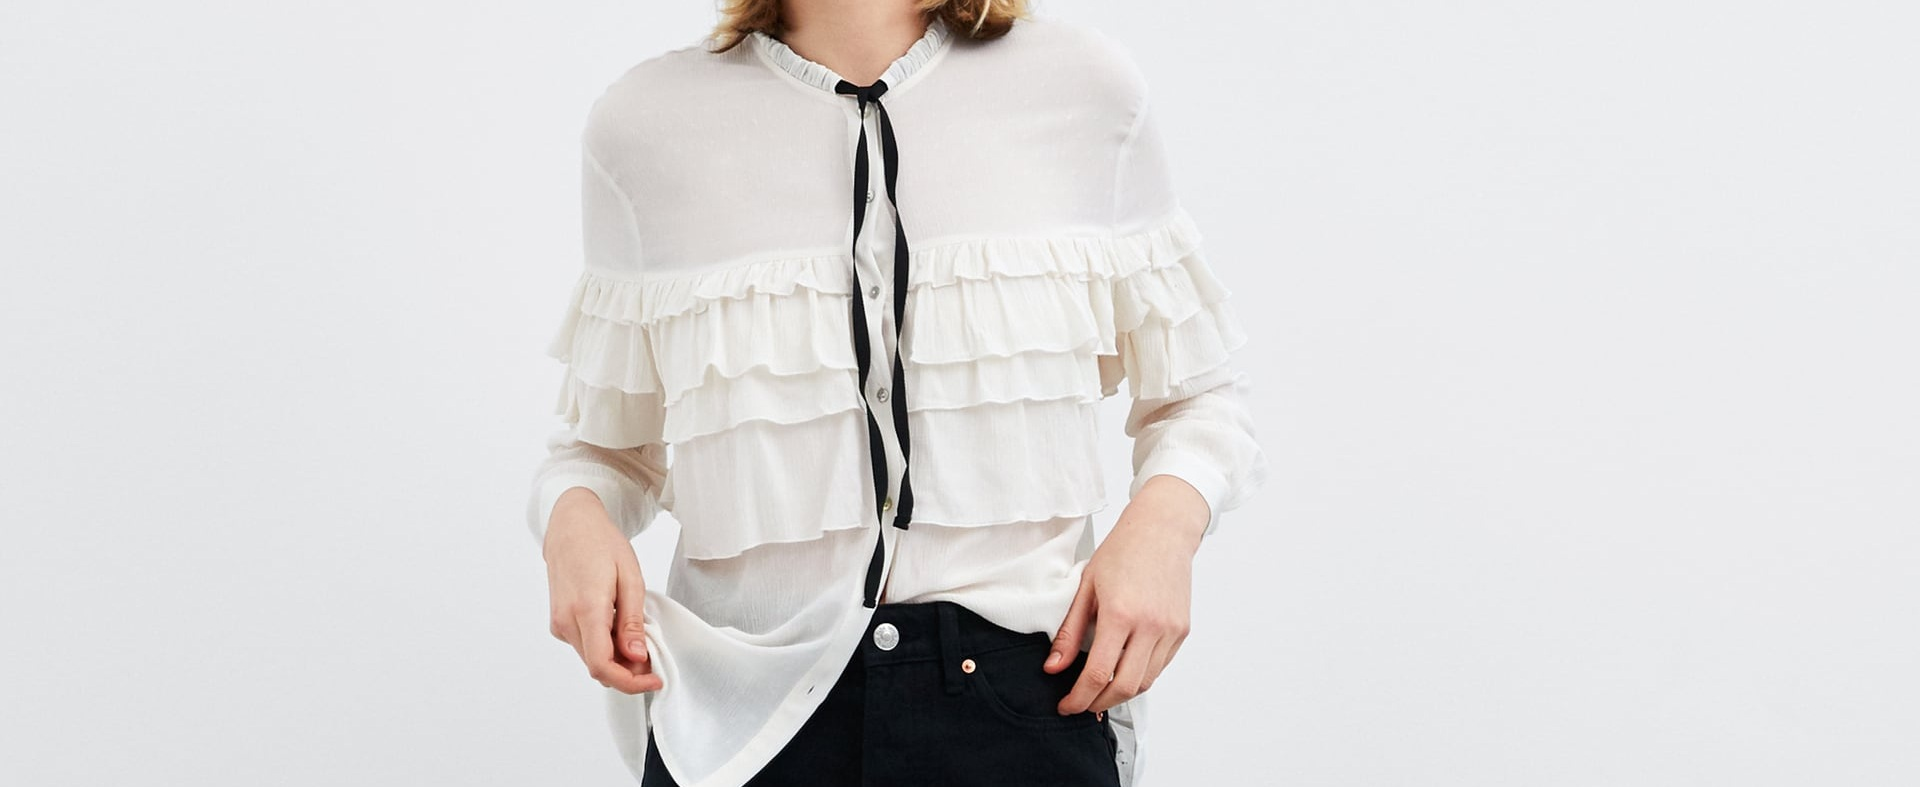 Ruffle Shirt with Bow